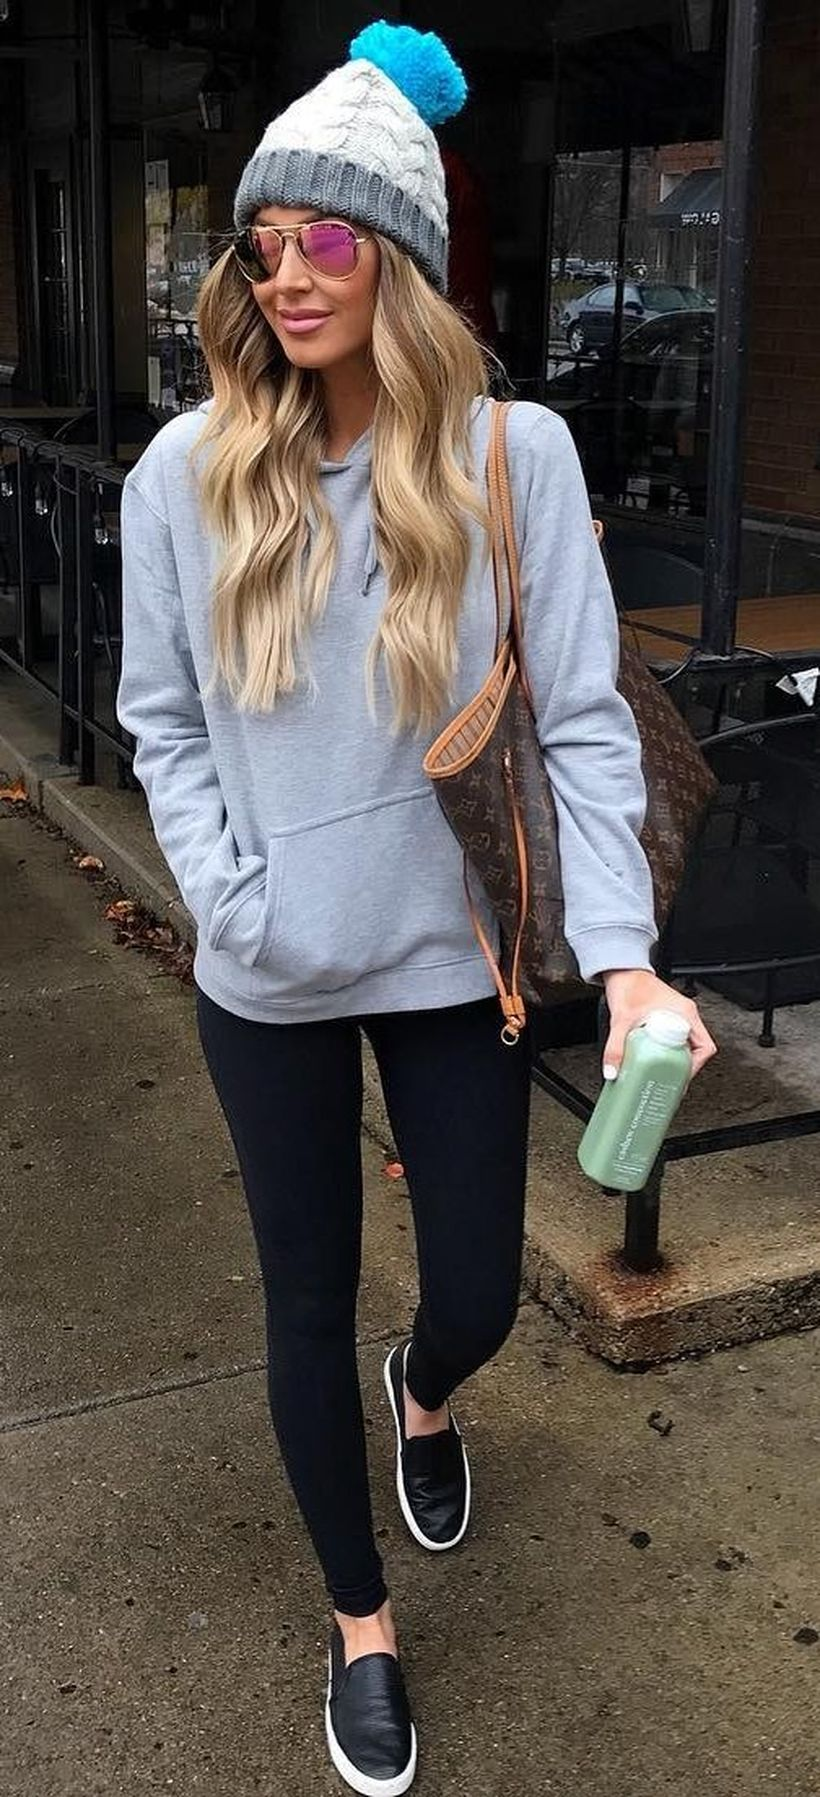 Casual fall fashions trend inspirations 2017 41 - Fashion Best